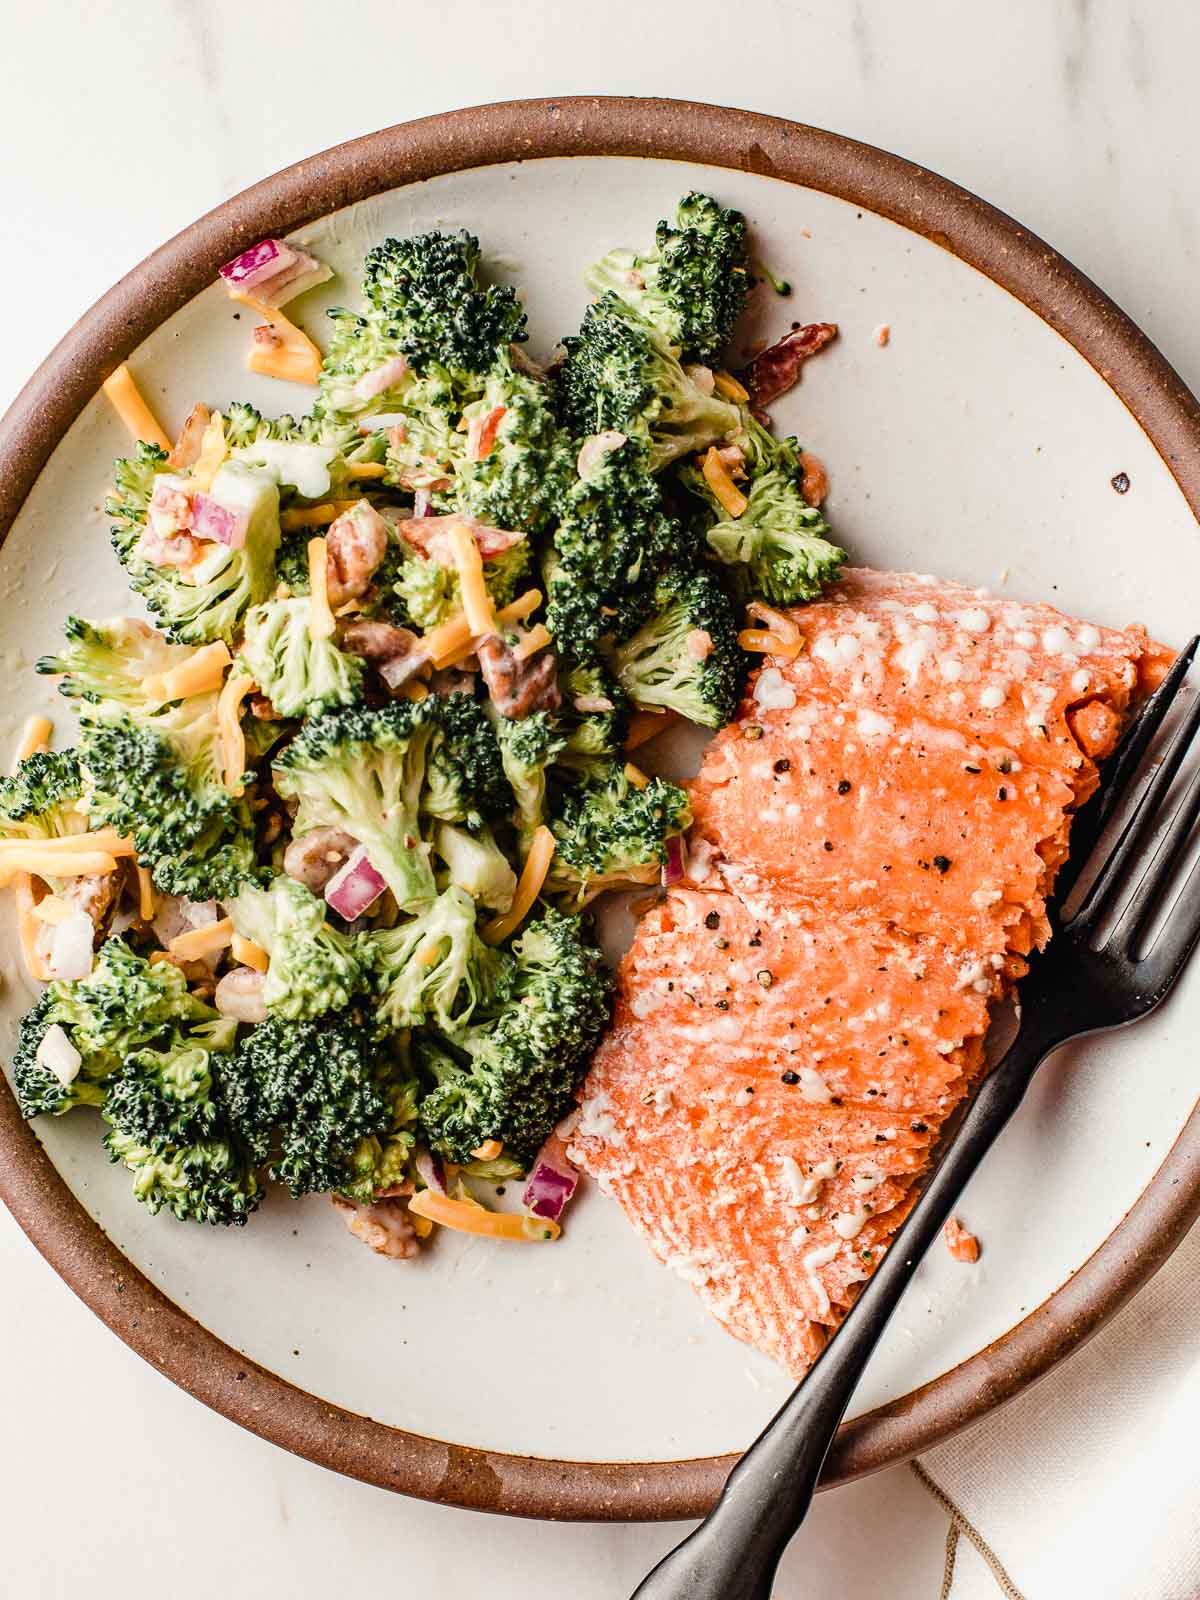 Baked salmon with broccoli salad on the side.